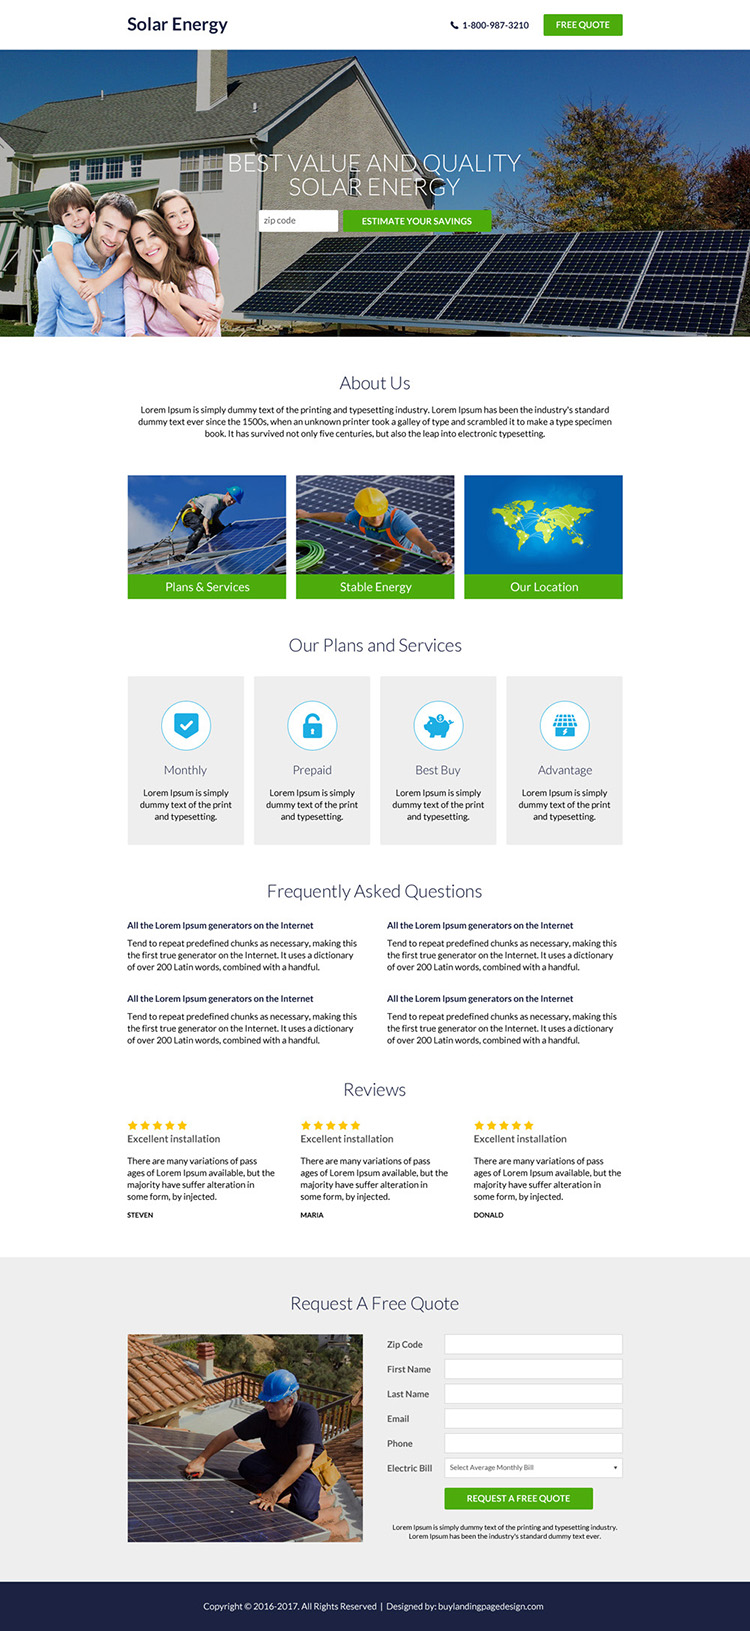 best solar energy professional lead capture landing page design